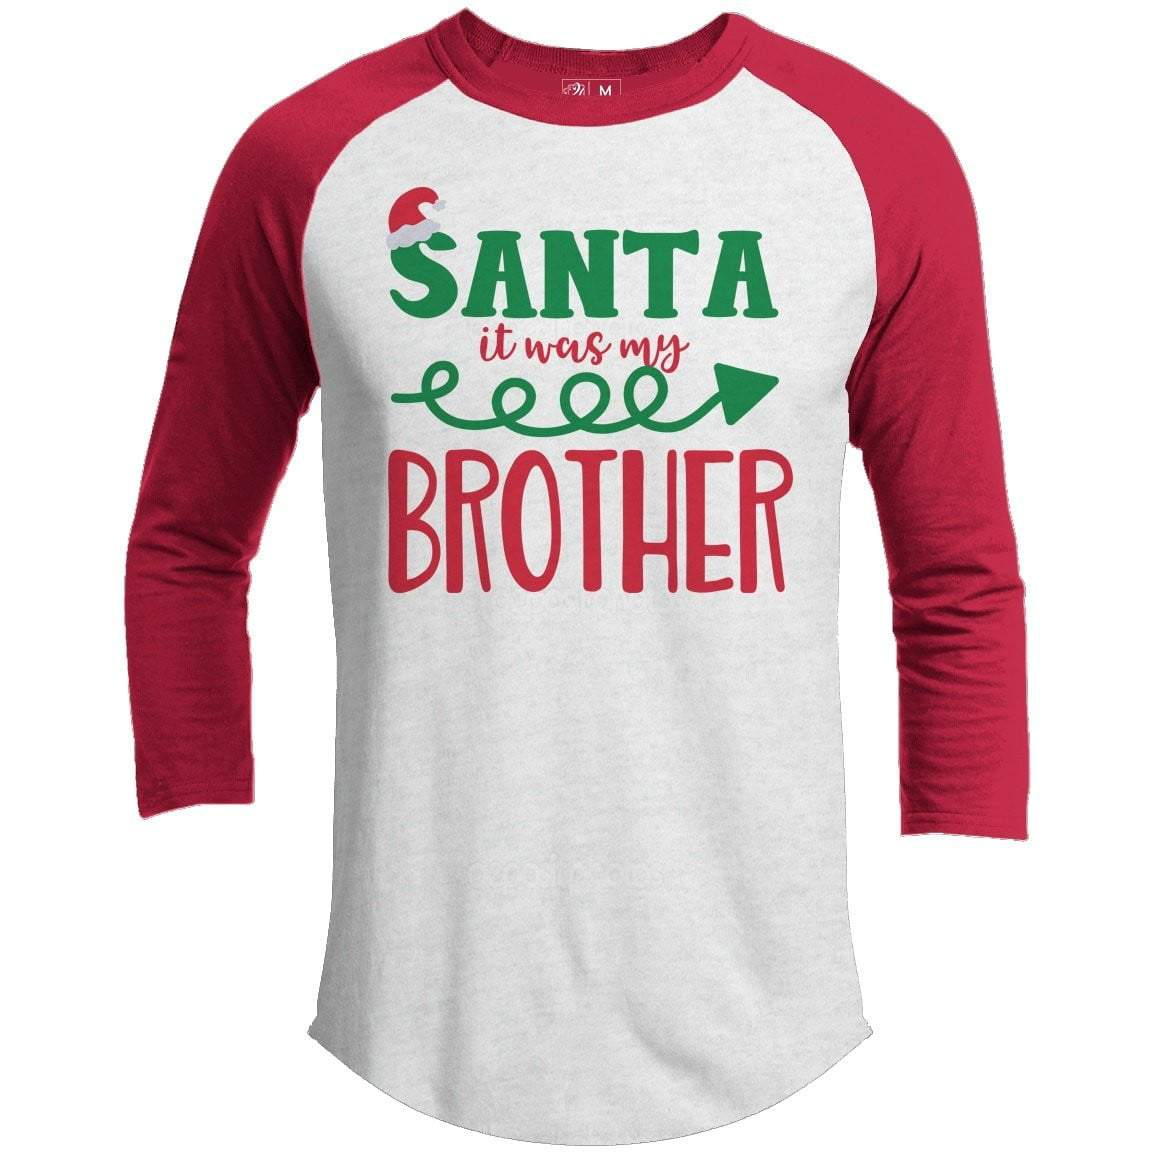 IT WAS MY BROTHER Premium Youth Christmas Raglan